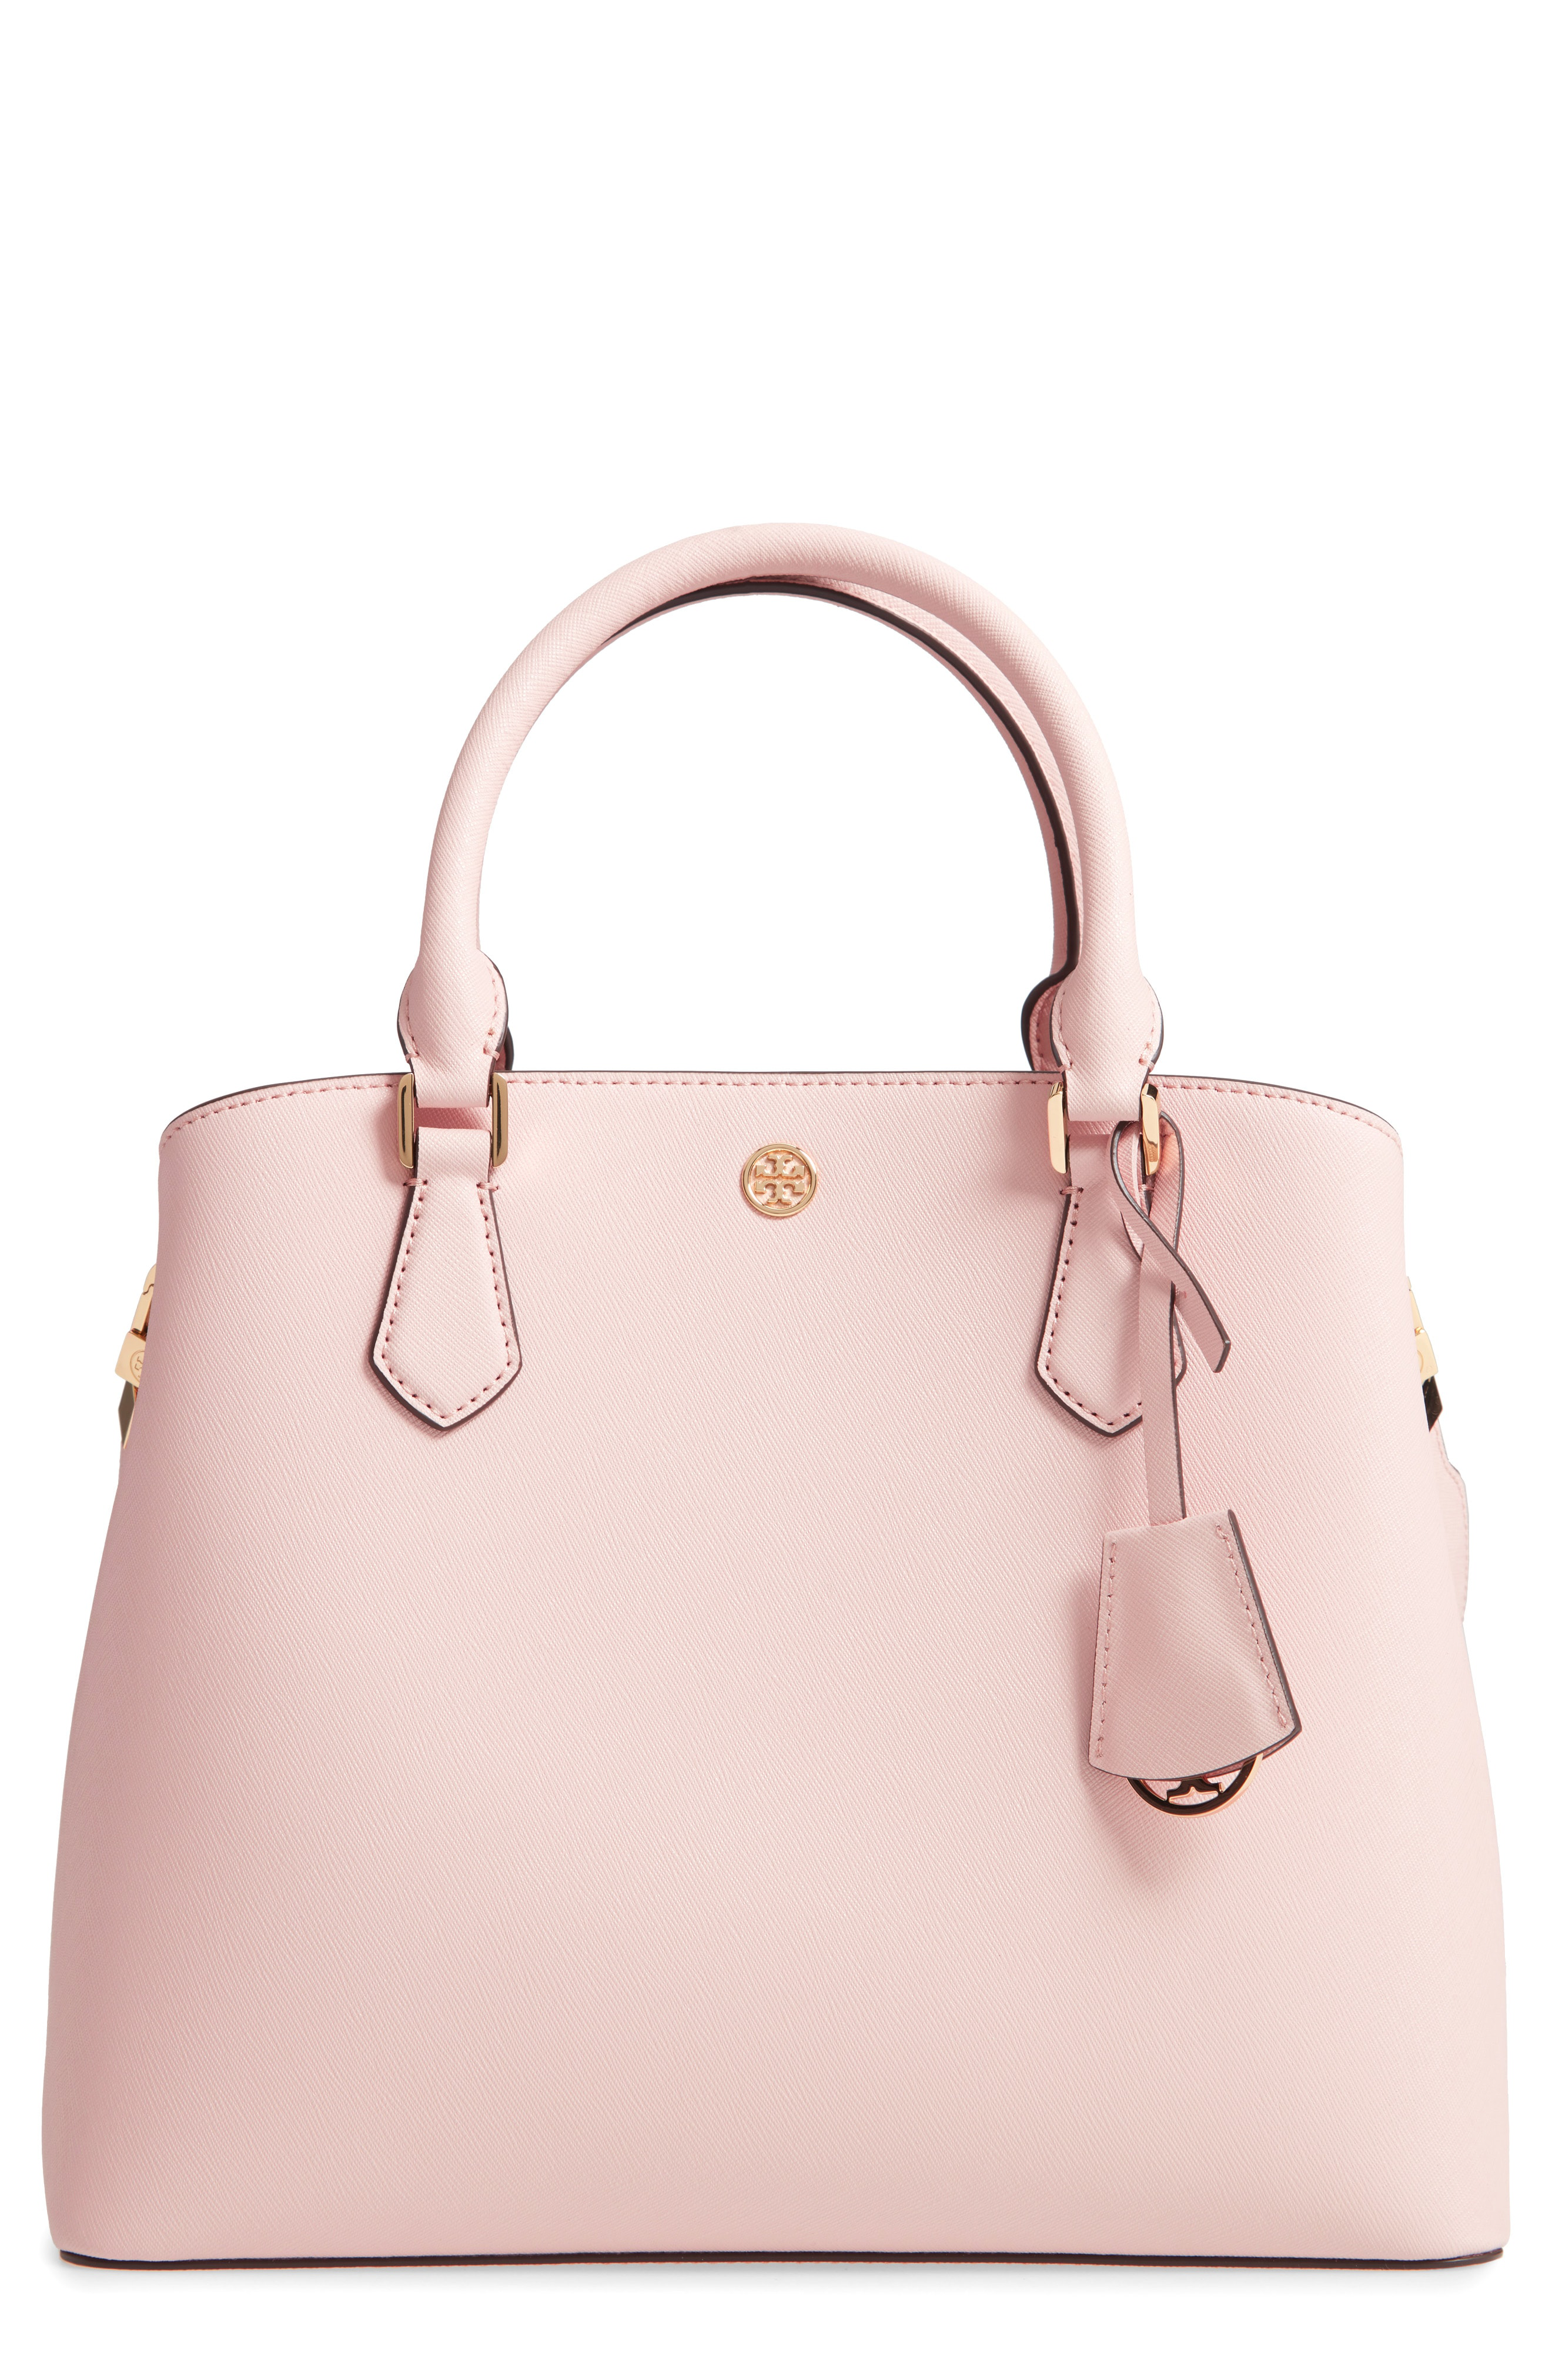 872d531915b0 Tory Burch Medium Robinson Leather Triple Compartment Bag - Pink In Shell  Pink